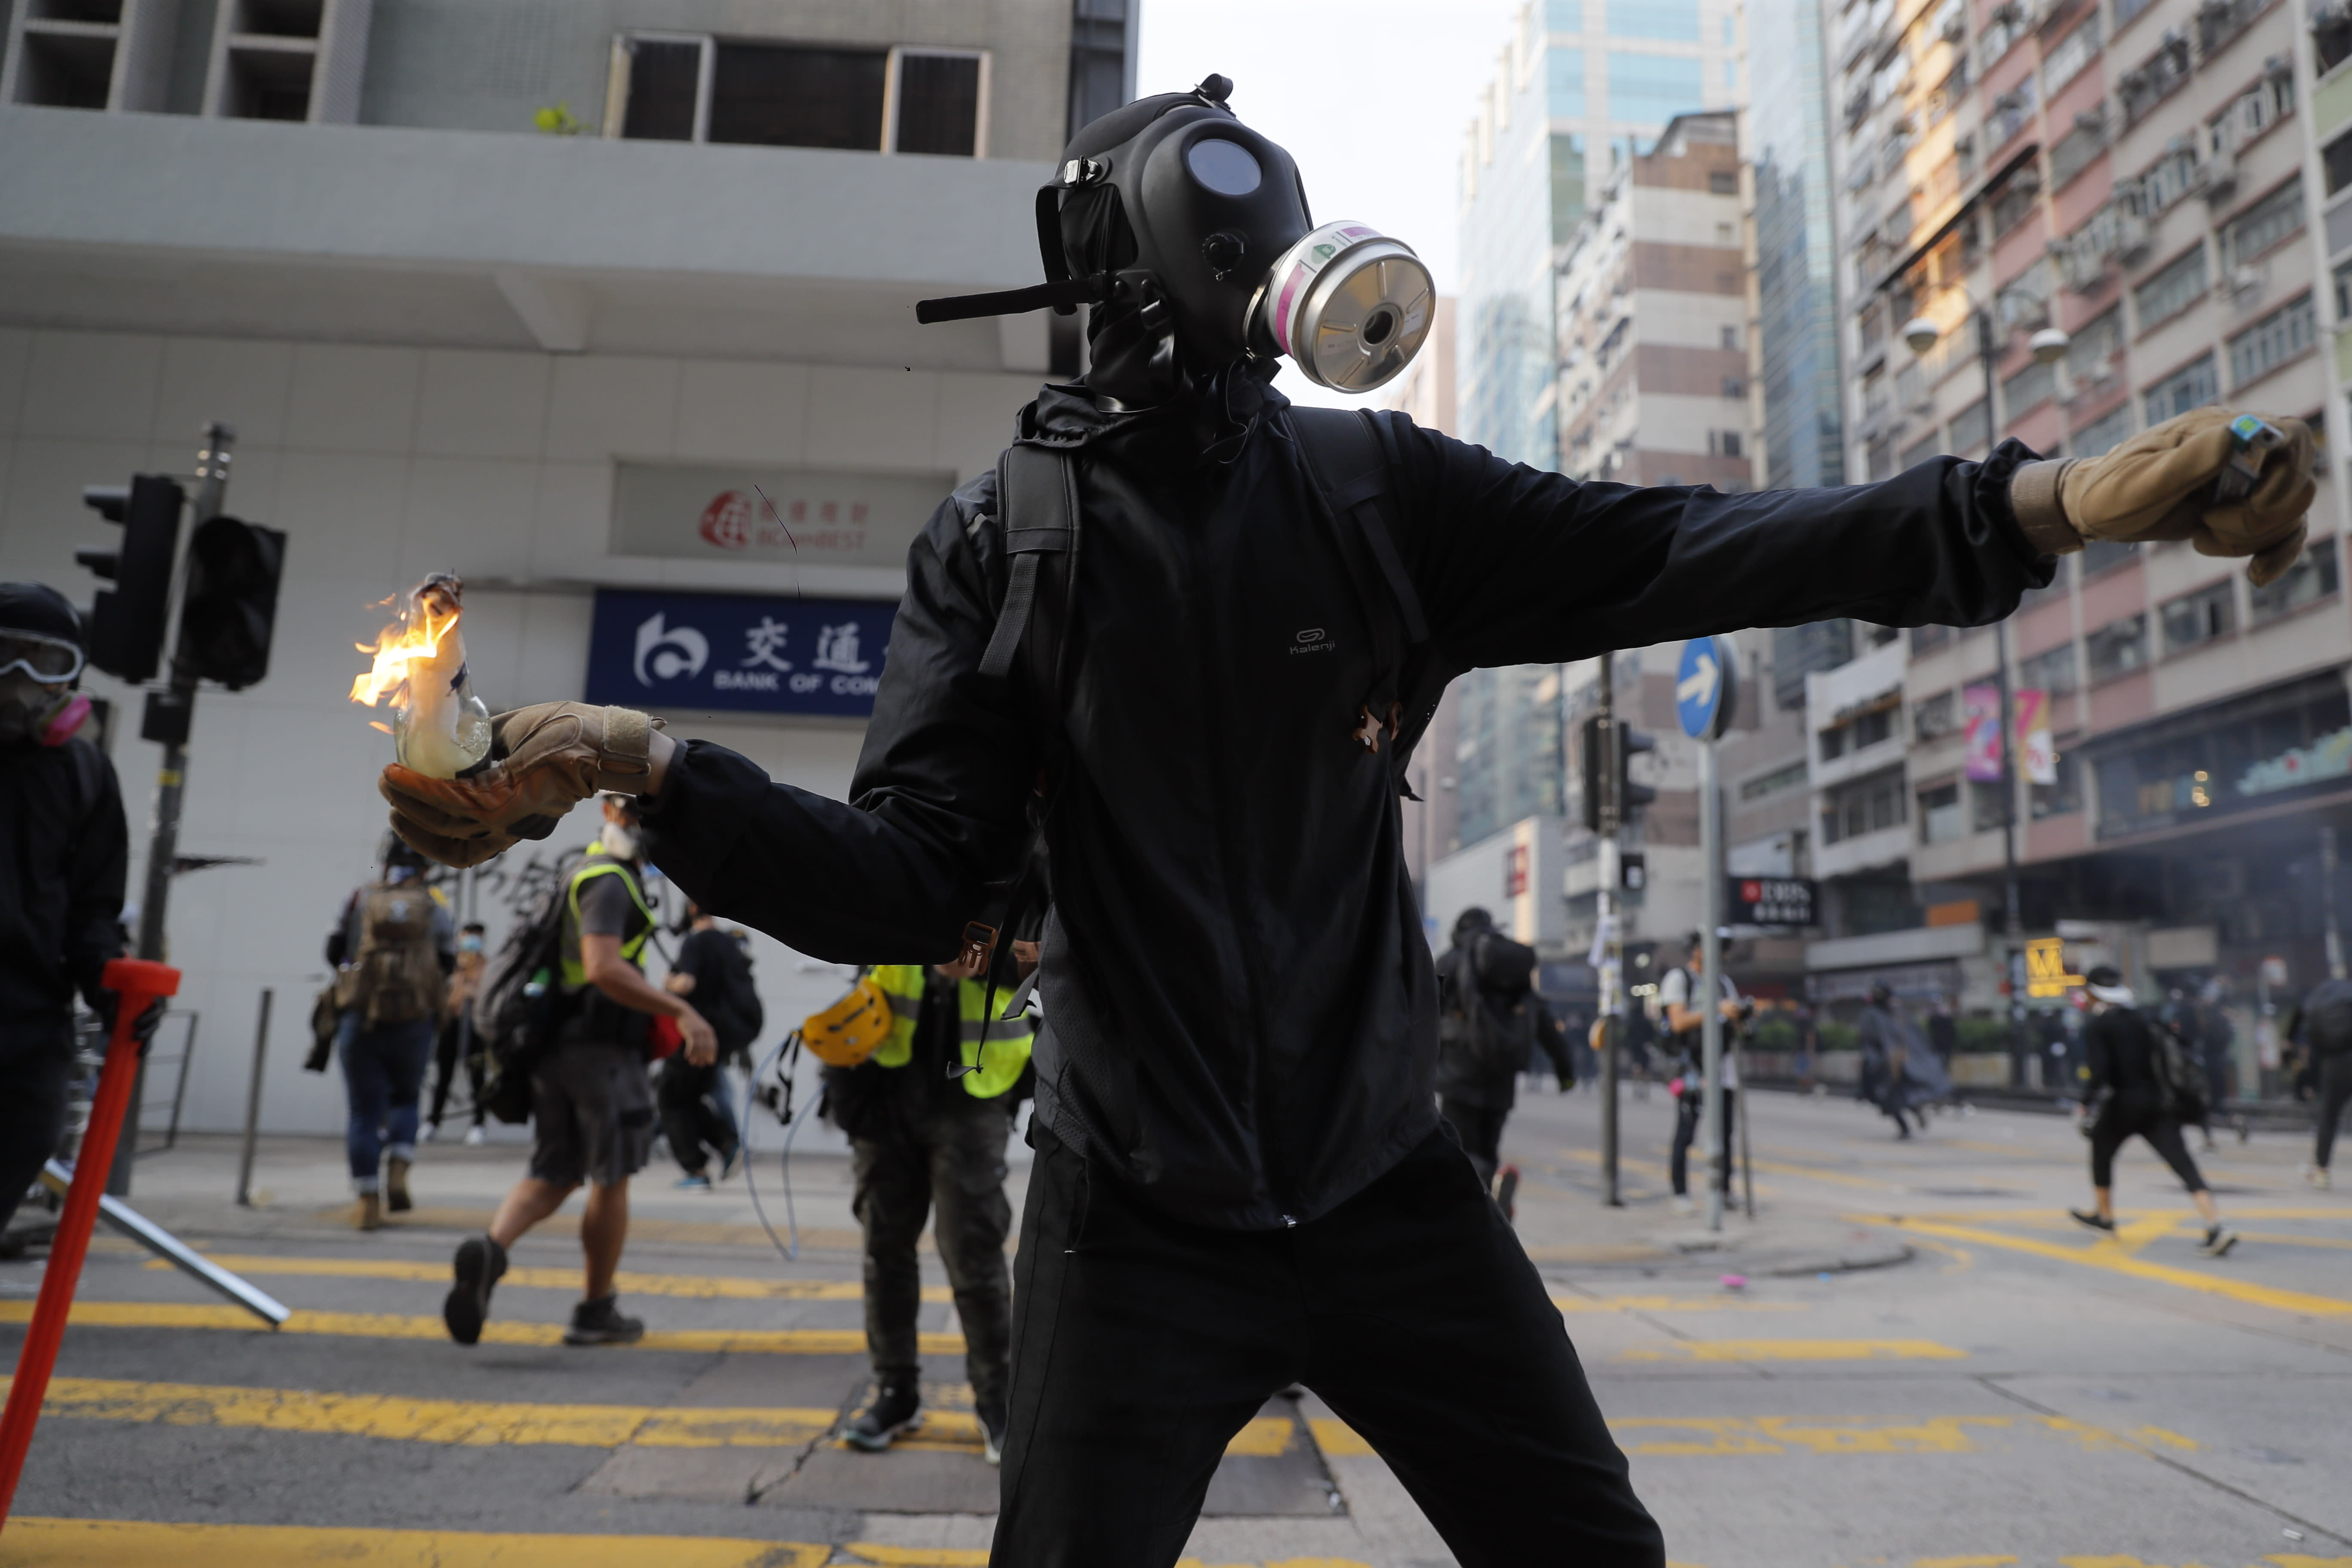 A protester prepares to throw a Molotov cocktail at a police station in Hong Kong, Sunday, Oct. 20, 2019. Hong Kong protesters again flooded streets on Sunday, ignoring a police ban on the rally and demanding the government meet their demands for accountability and political rights. (AP Photo/Kin Cheung)